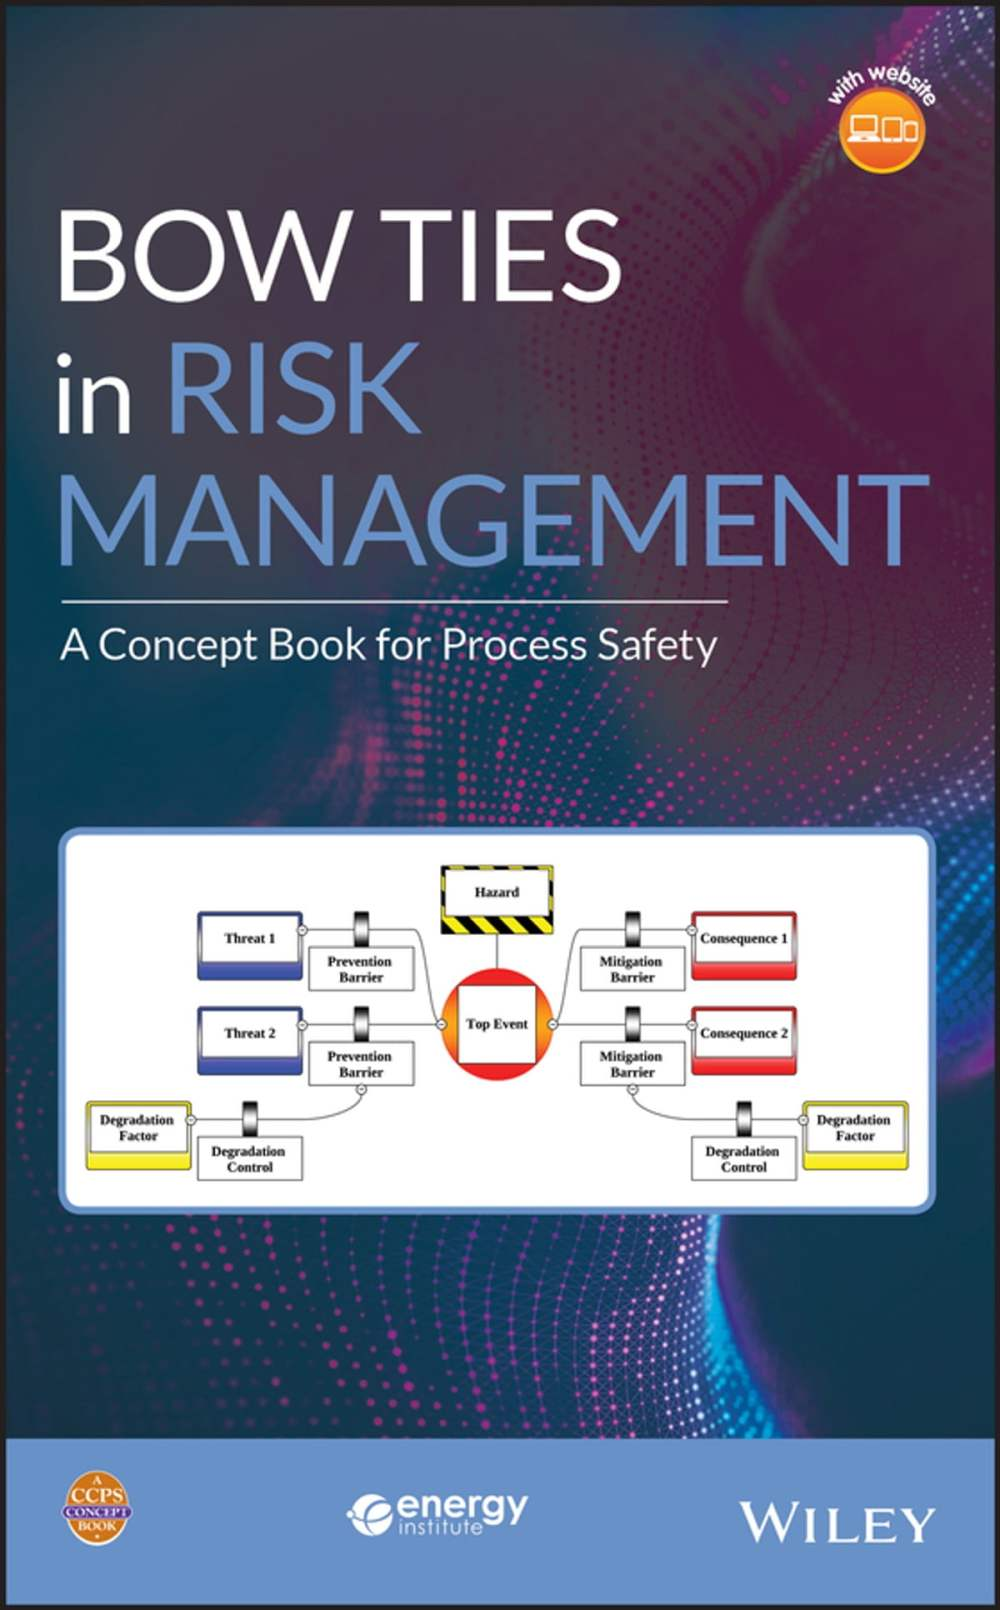 medium resolution of bow ties in risk management ebook by ccps center for chemical process safety 9781119490340 rakuten kobo